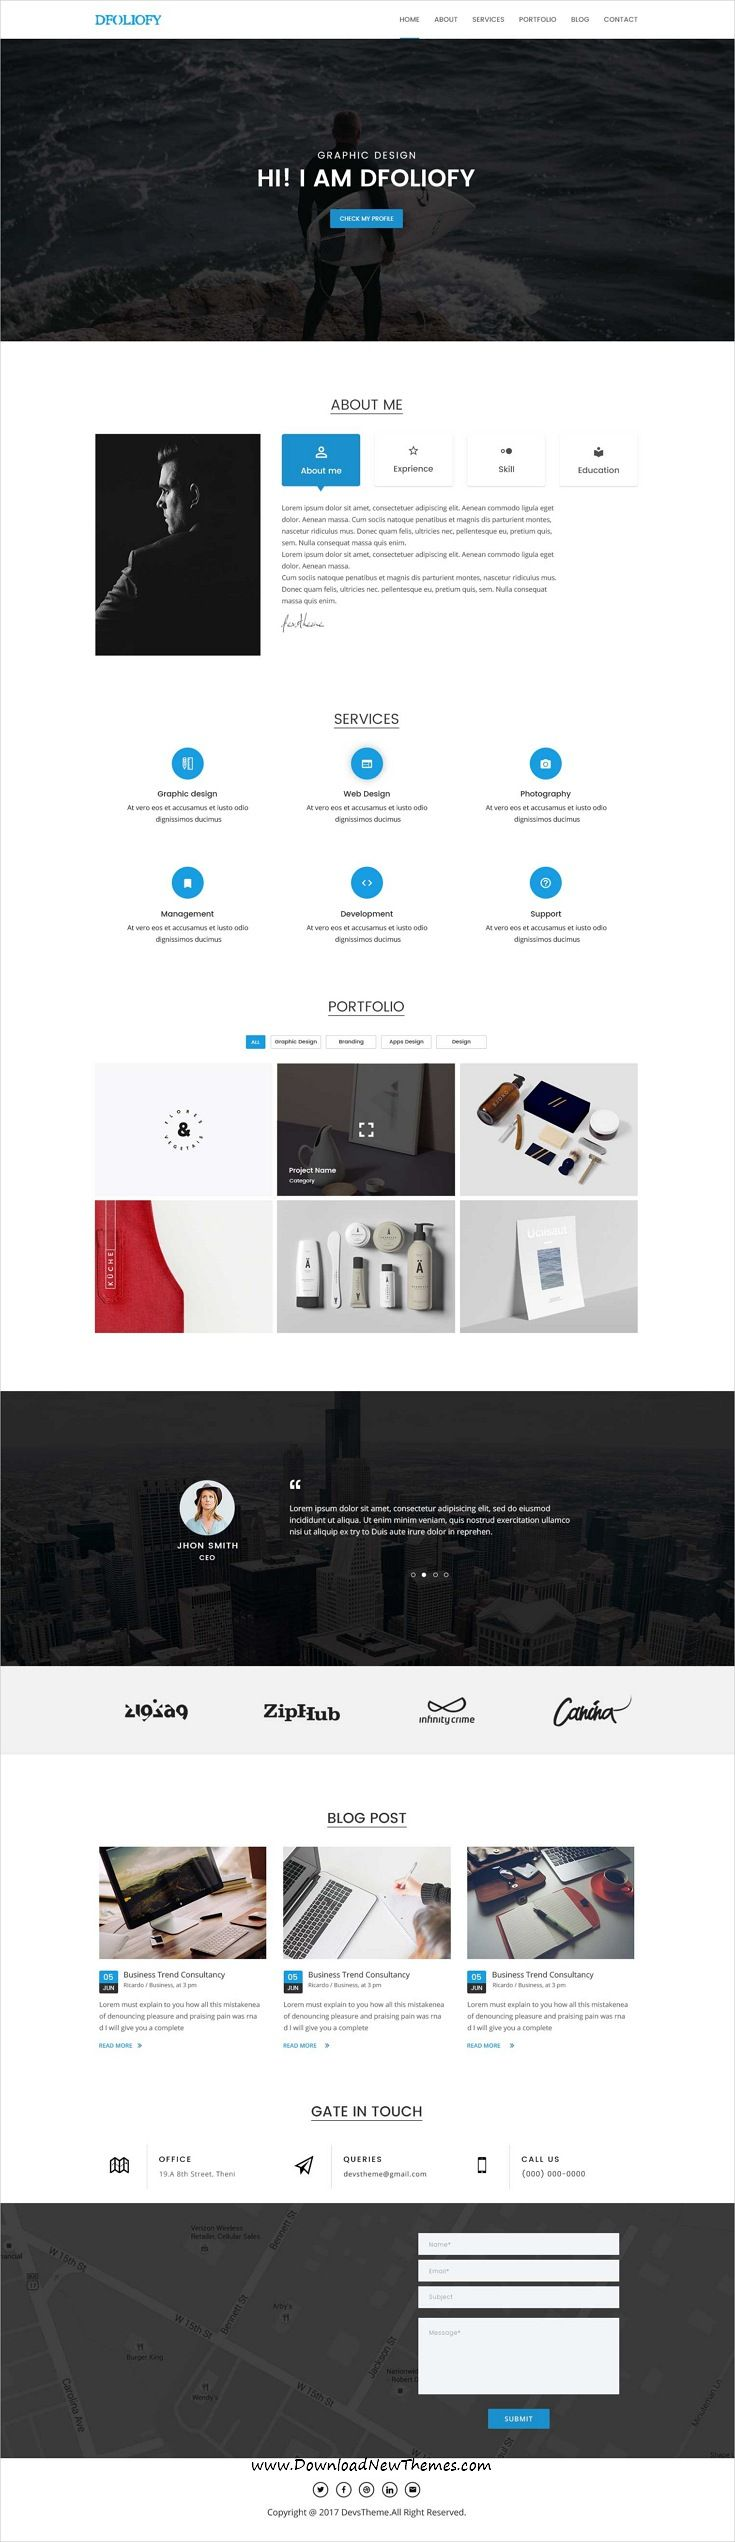 dFolioy is clean and modern design #PSD template for onepage creative #resume and #Portfolio showcase website to live preview & download click on Visit